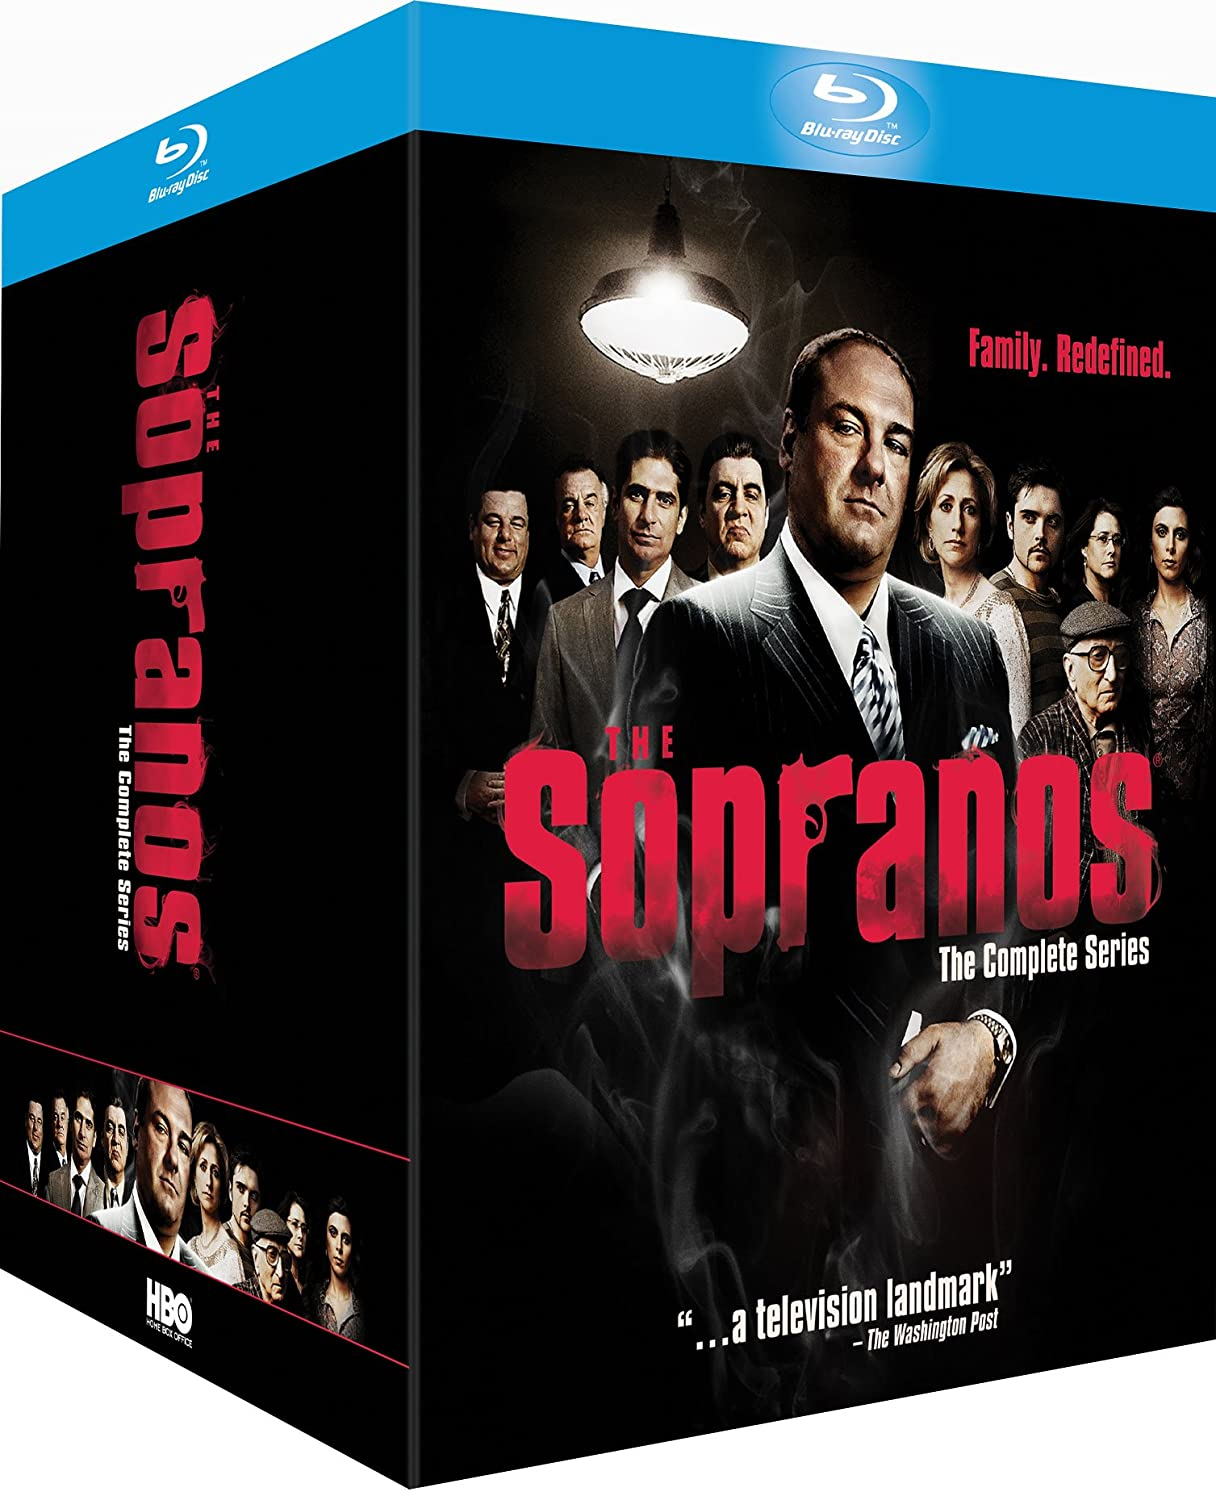 review the sopranos complete series bluray collection